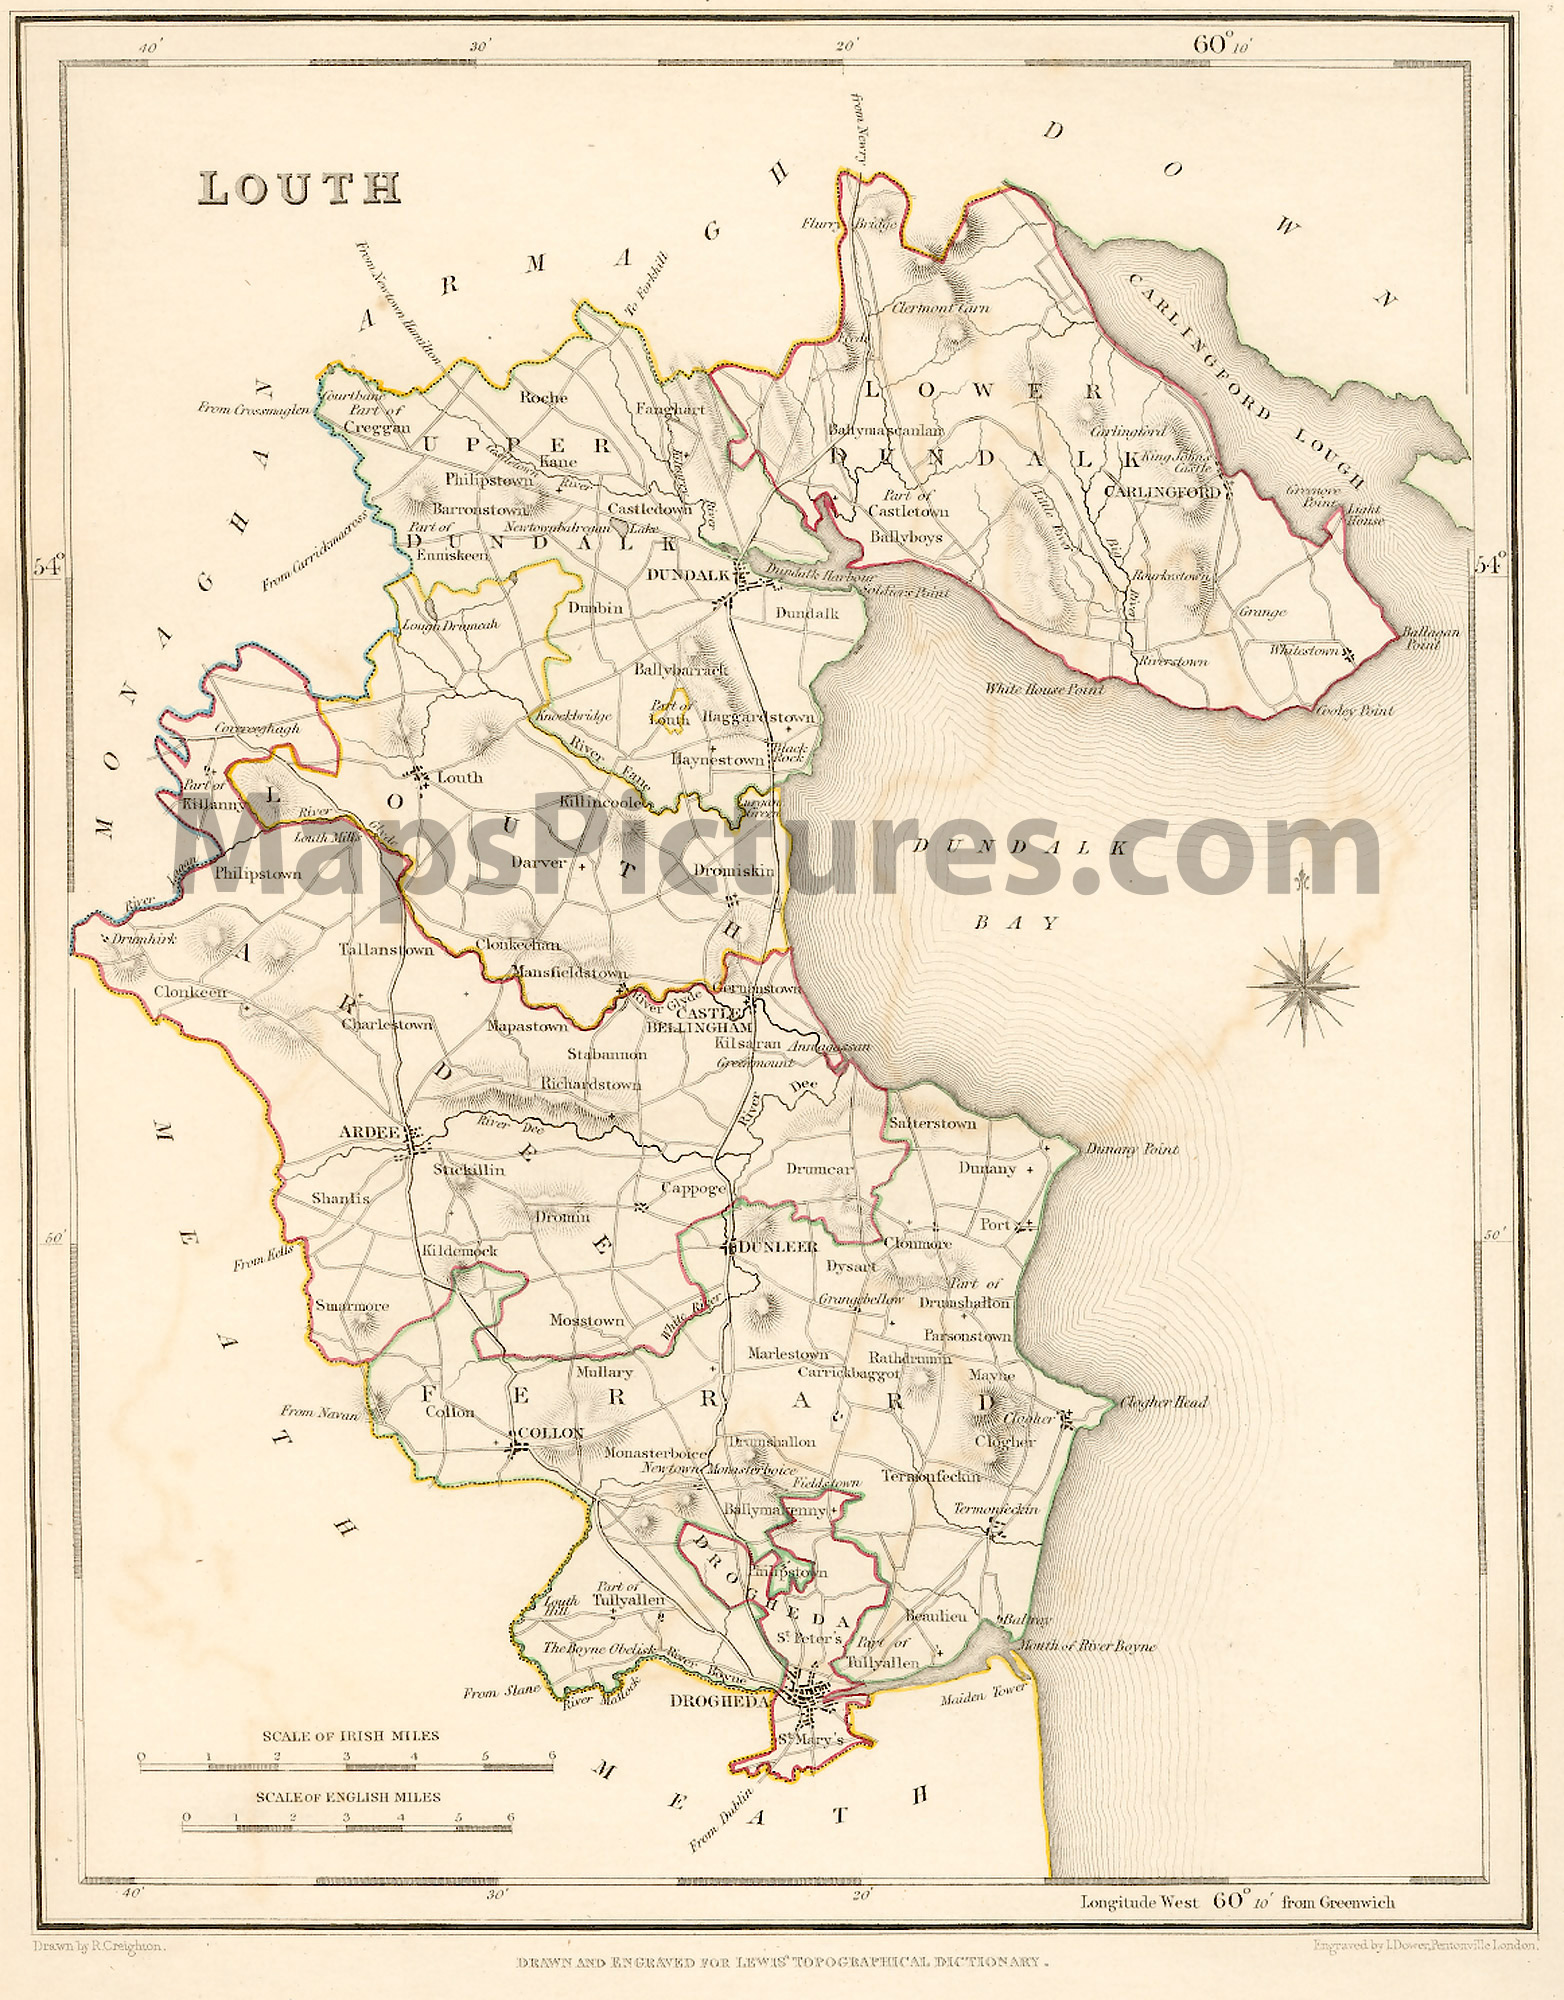 Map Of Ireland Louth.County Louth Ireland Map 1837